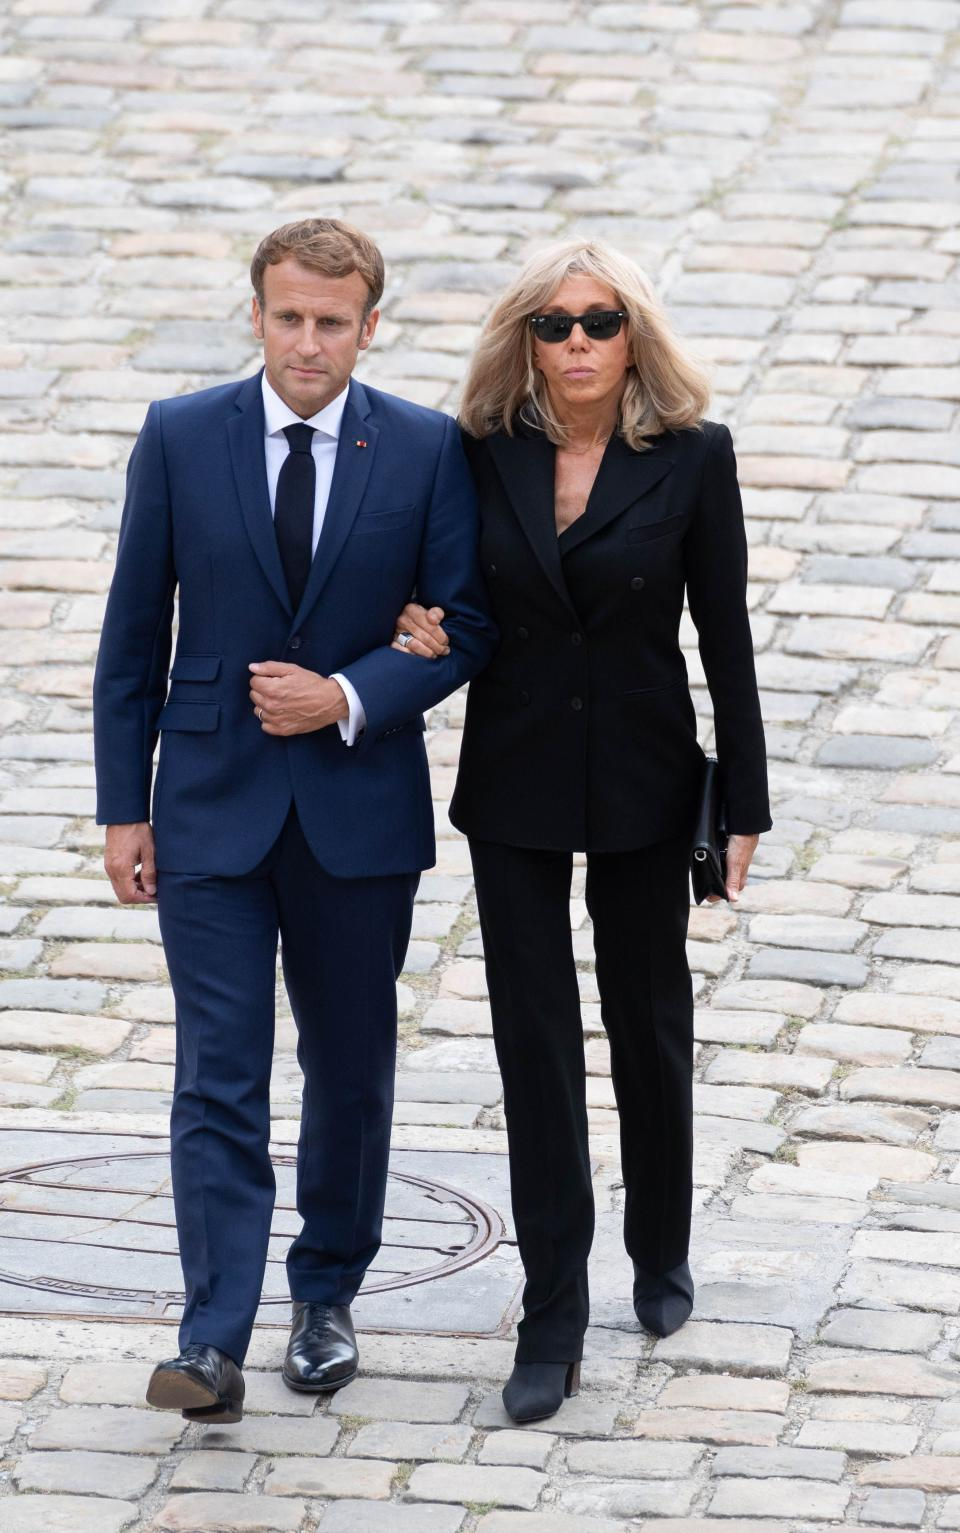 French President Emmanuel Macron (left) and his wife Brigitte Macron arrive to attend the national tribute ceremony to the late French actor Jean-Paul Belmondo at the Hôtel des Invalides monument.  - Credit: Jacques WITT / SIPA